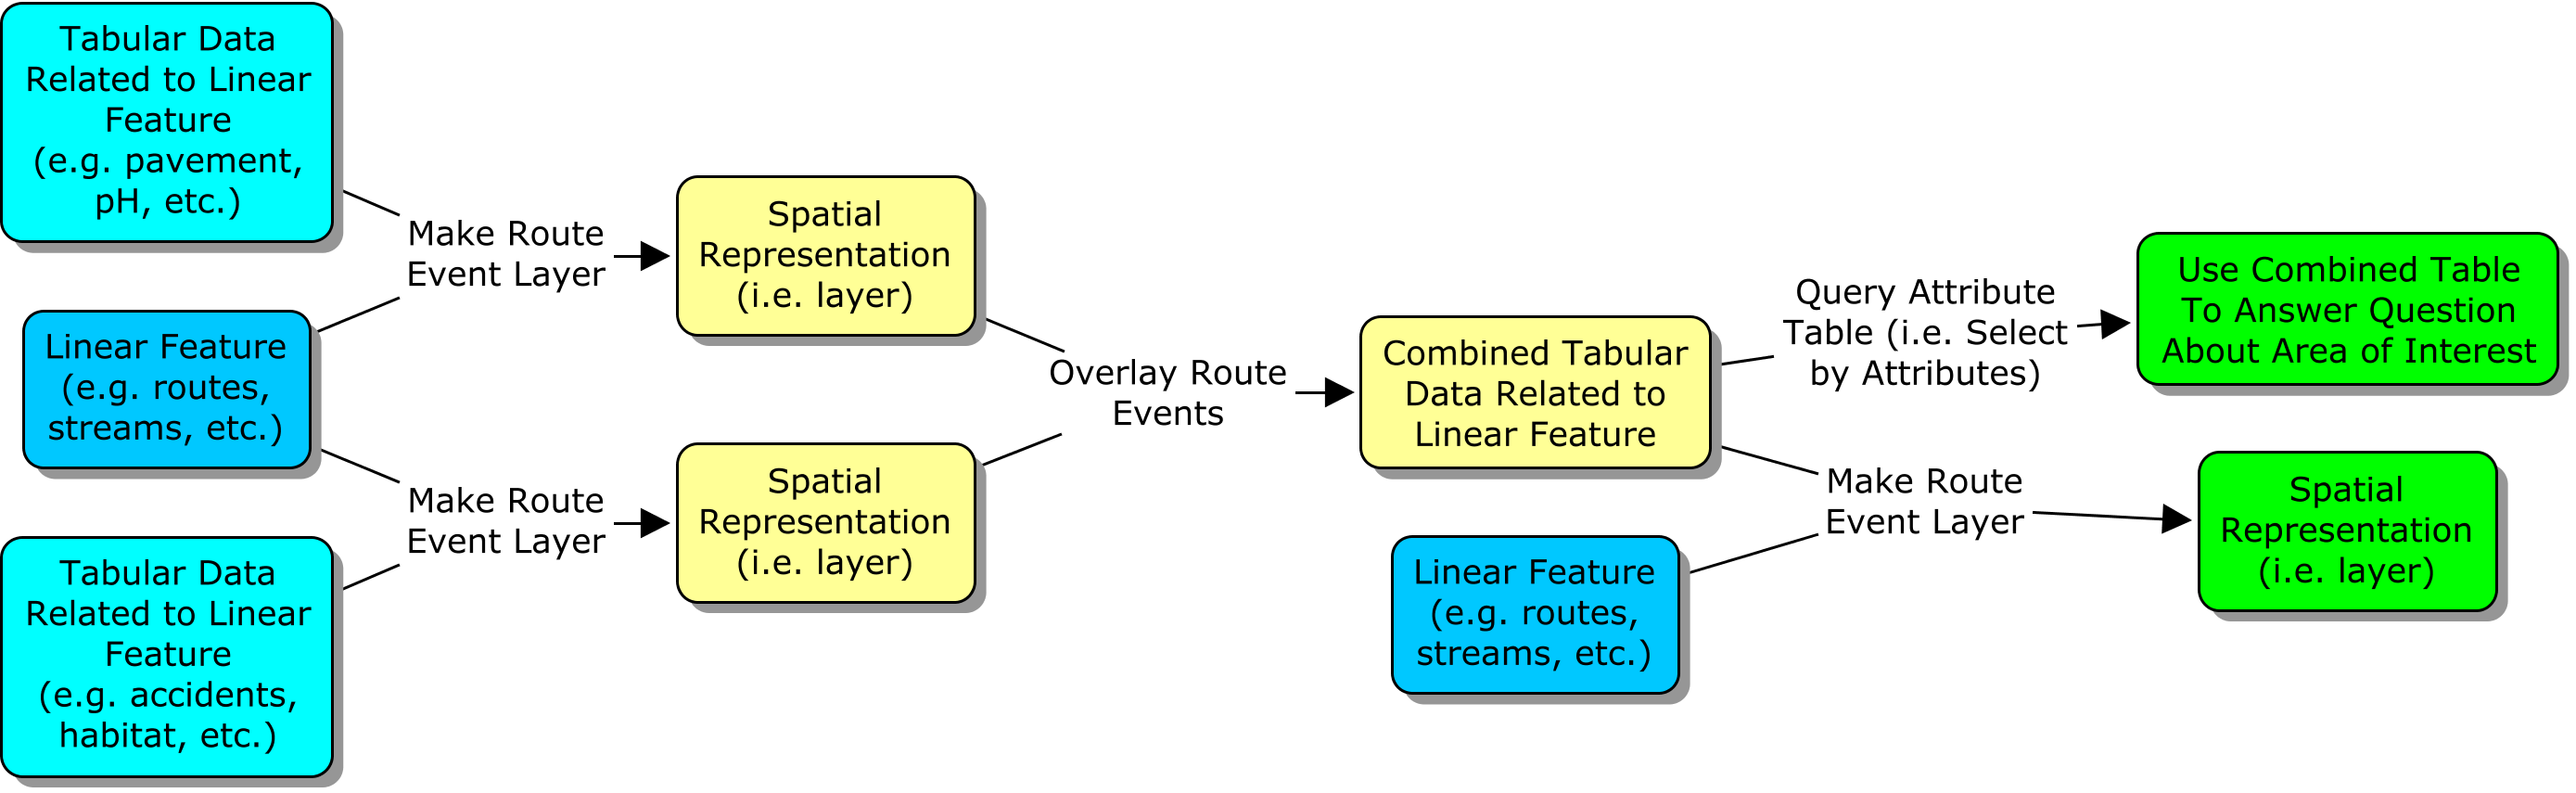 Linear referencing workflow diagram